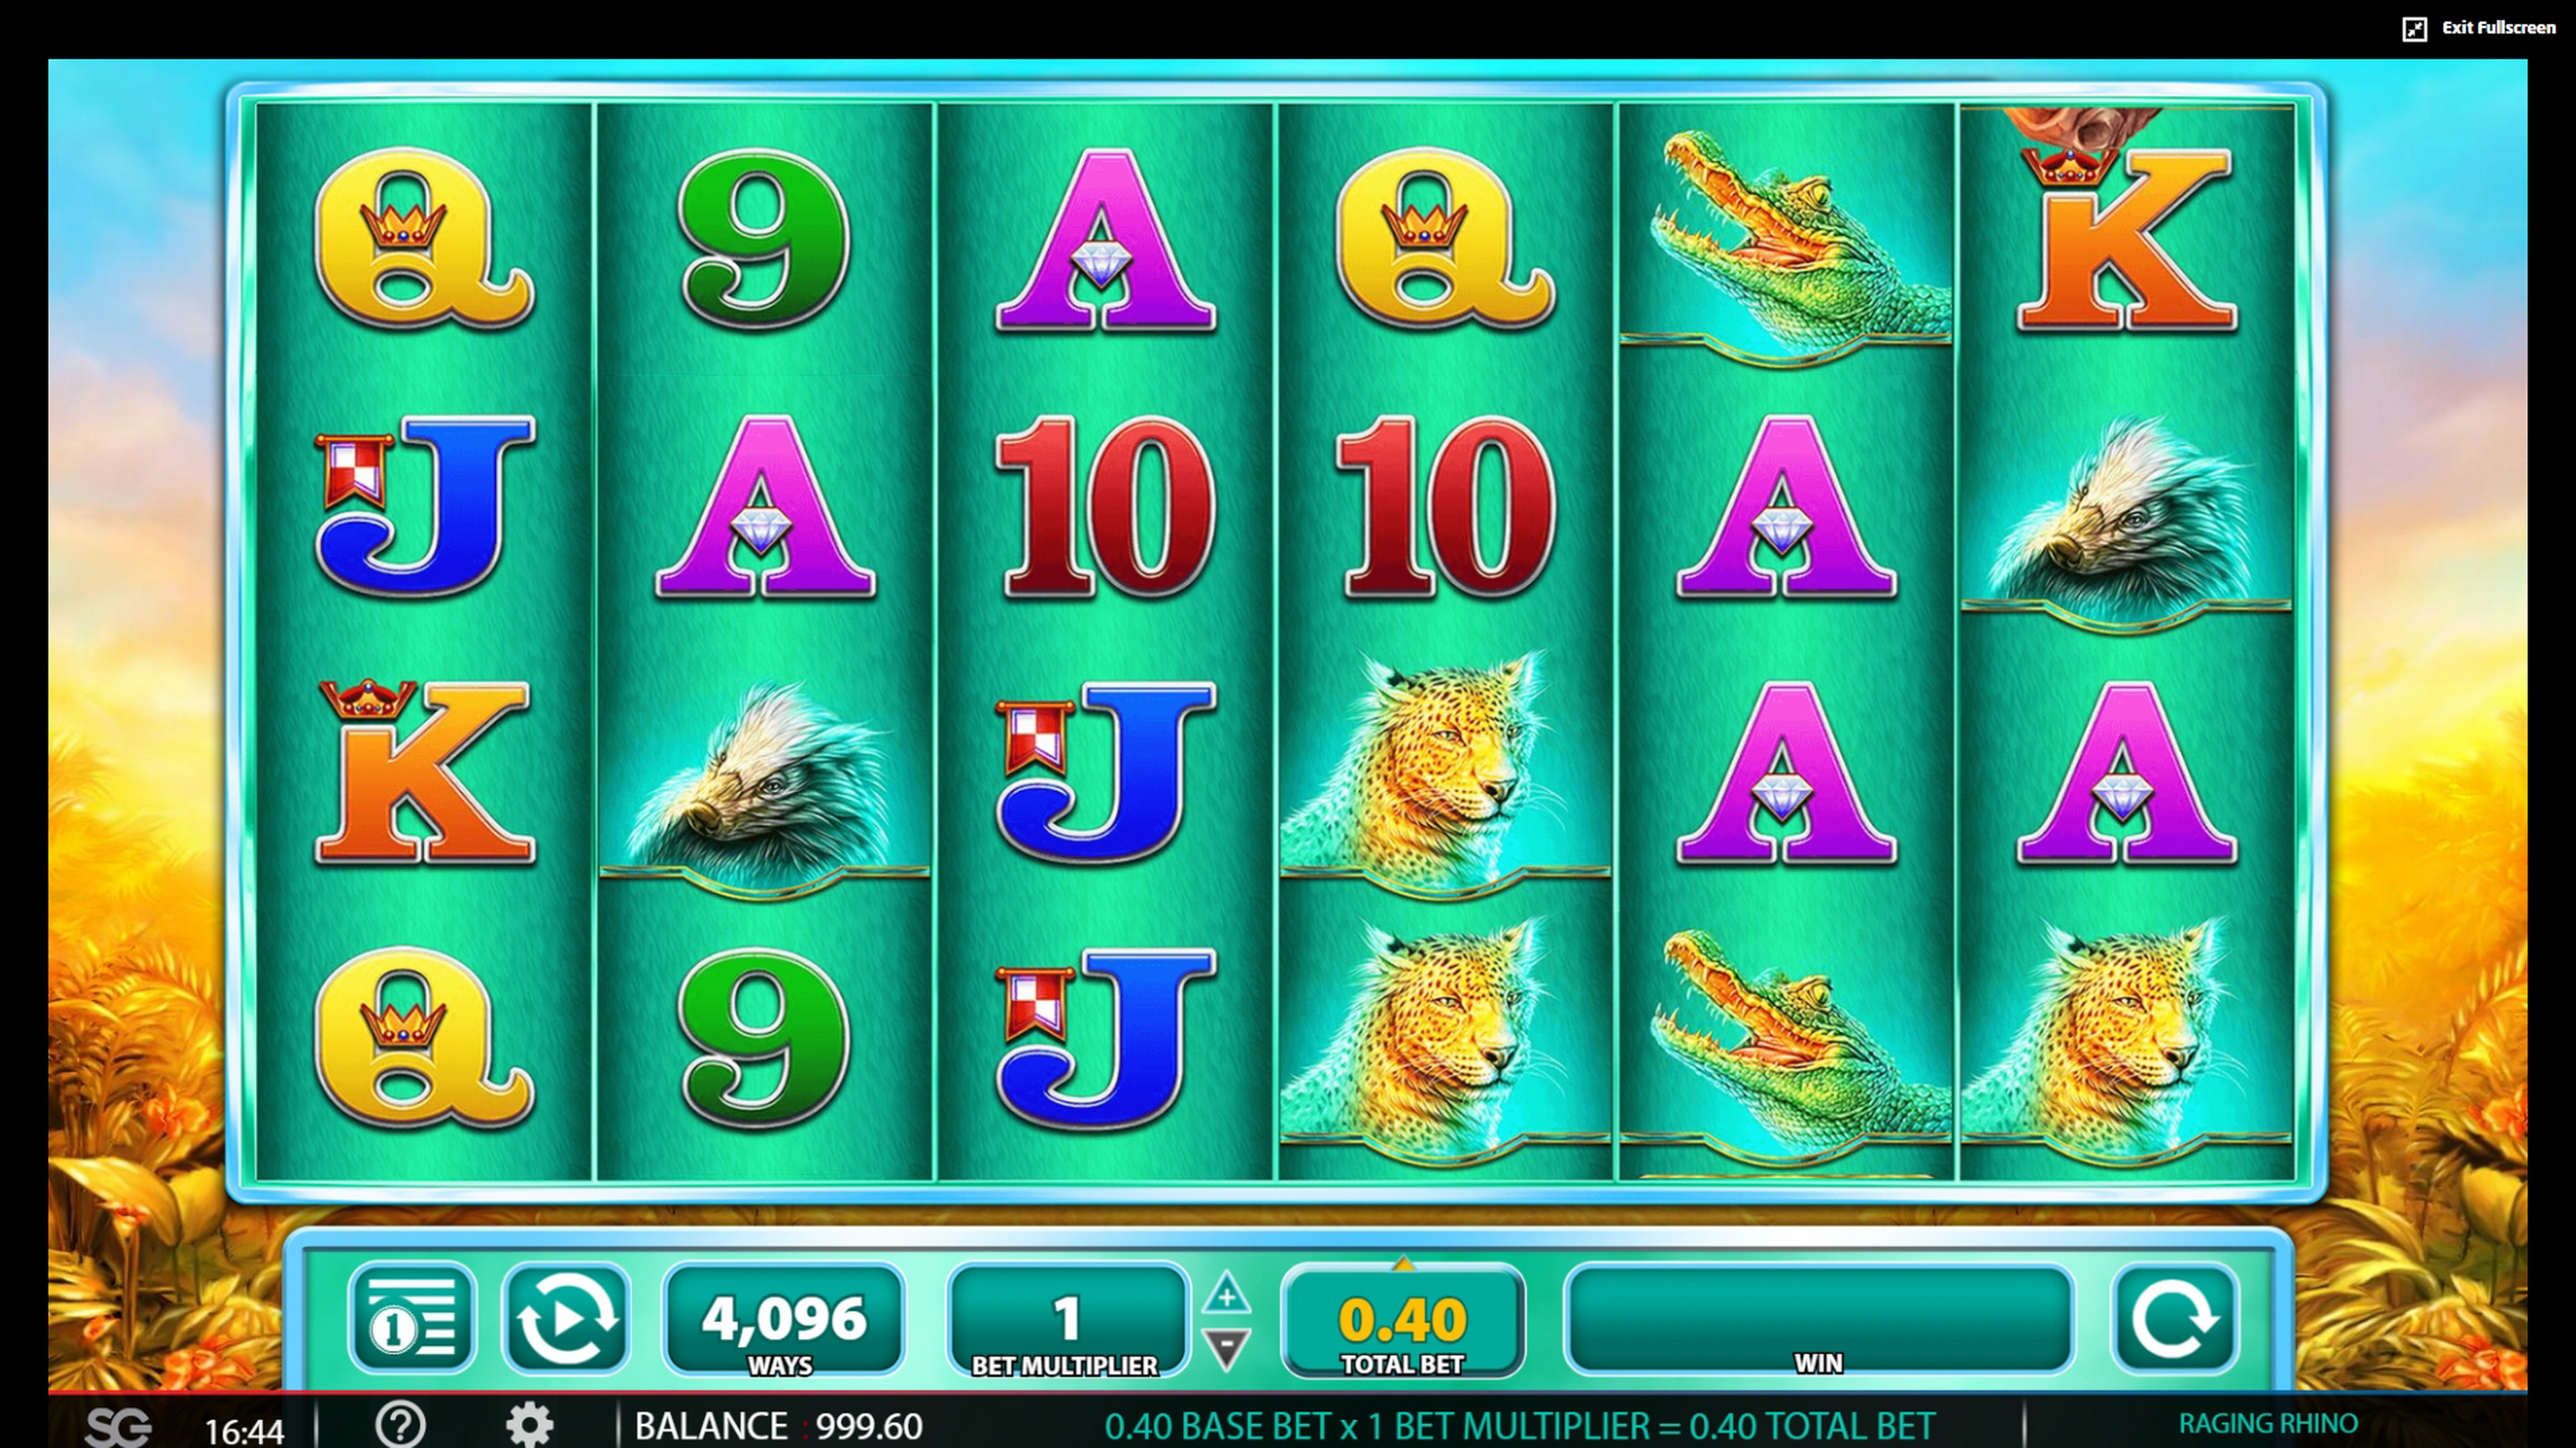 Reels in Raging Rhino Slot Game by WMS